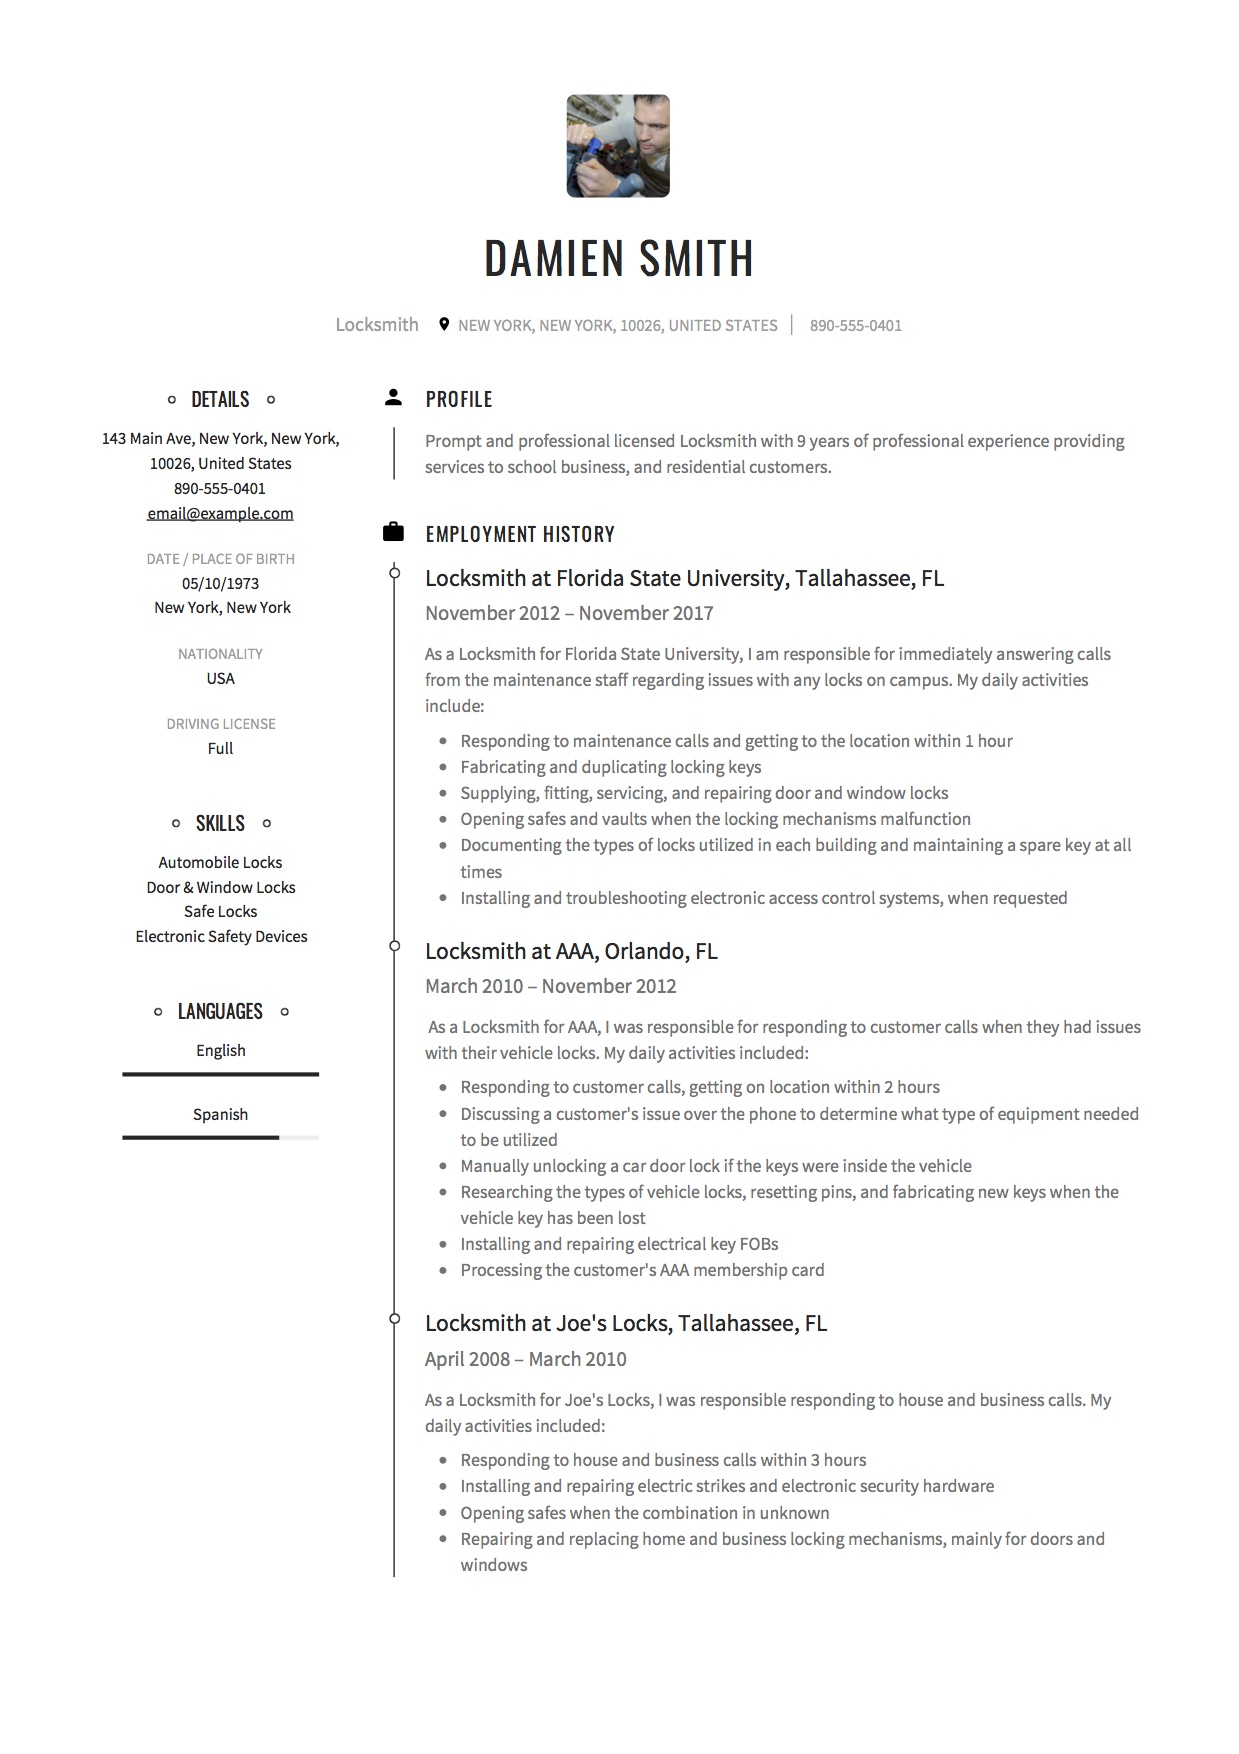 12 Locksmith Resume Samples 2018 Free Download Creative Designs